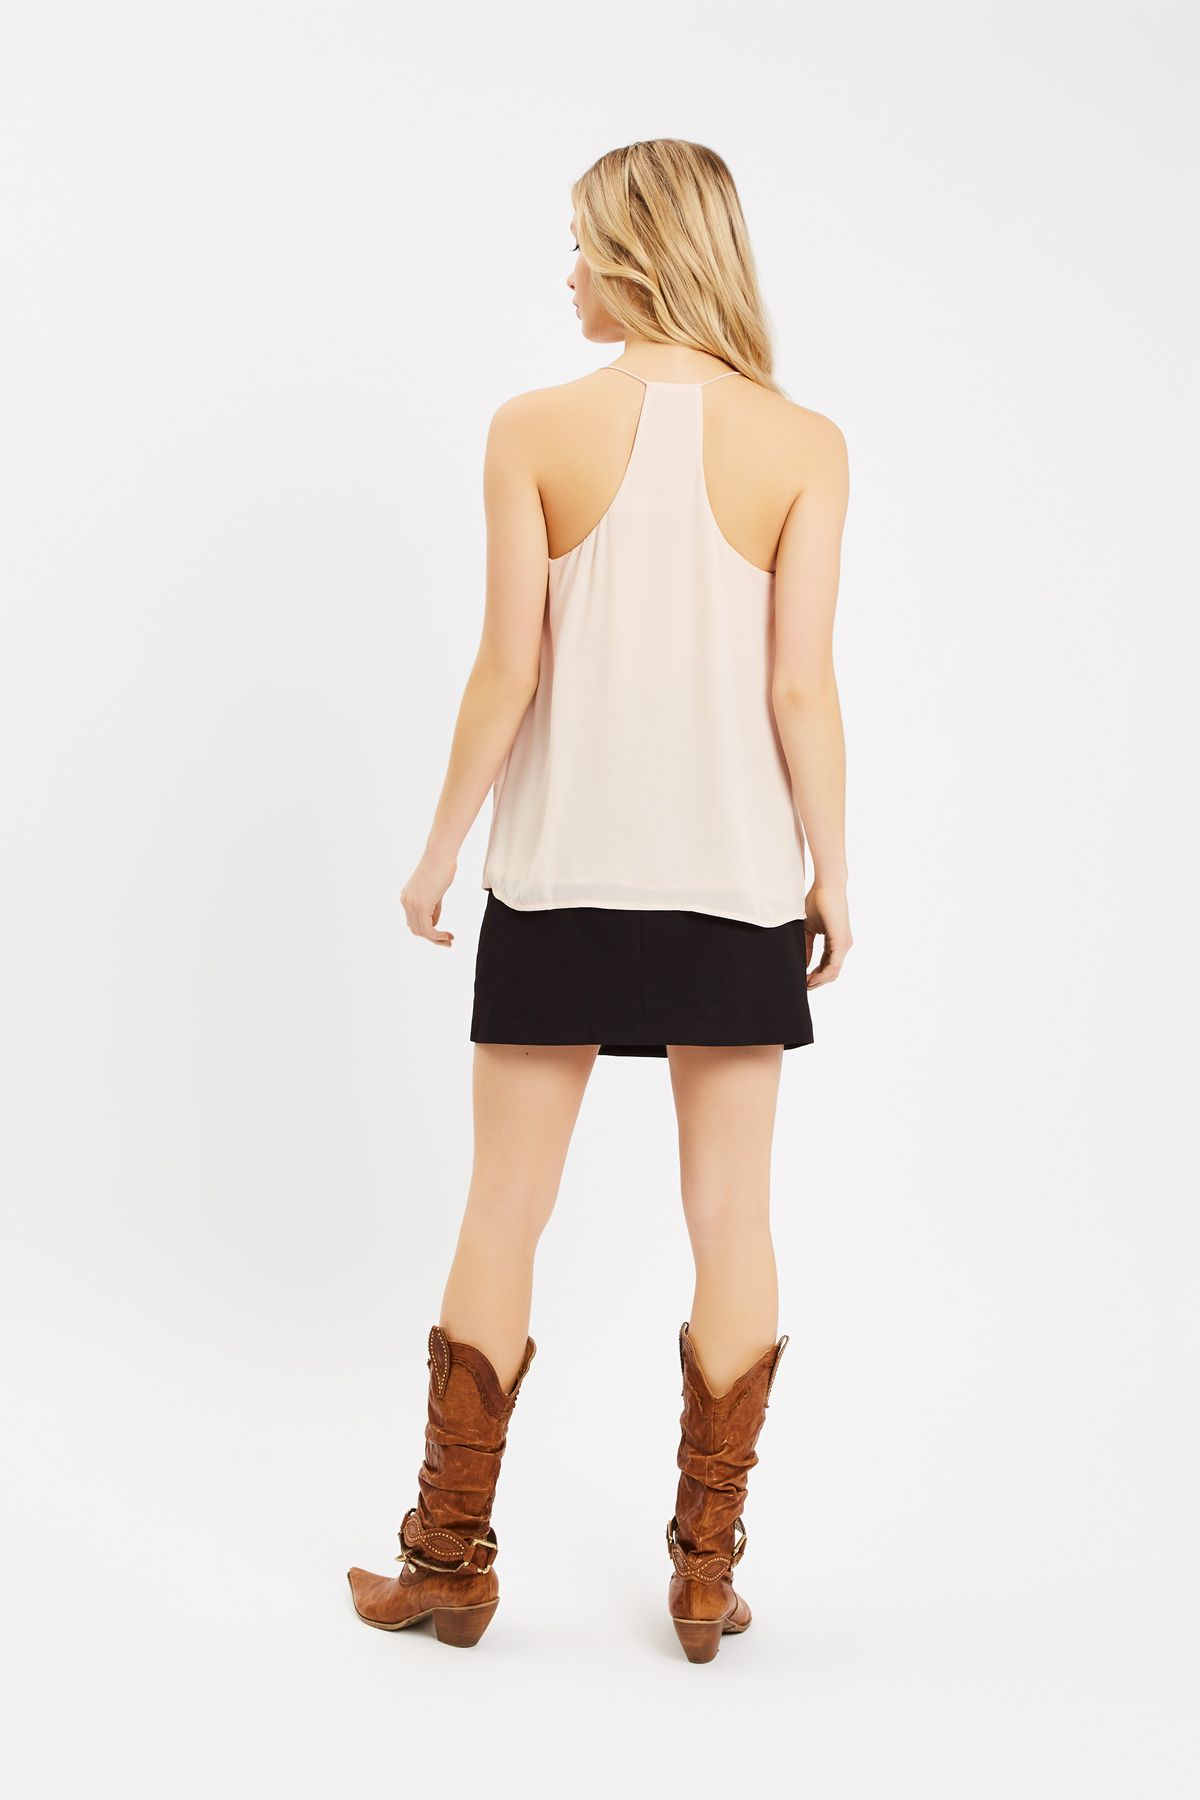 Pastel Dreams Racer Back Camisole in Pink